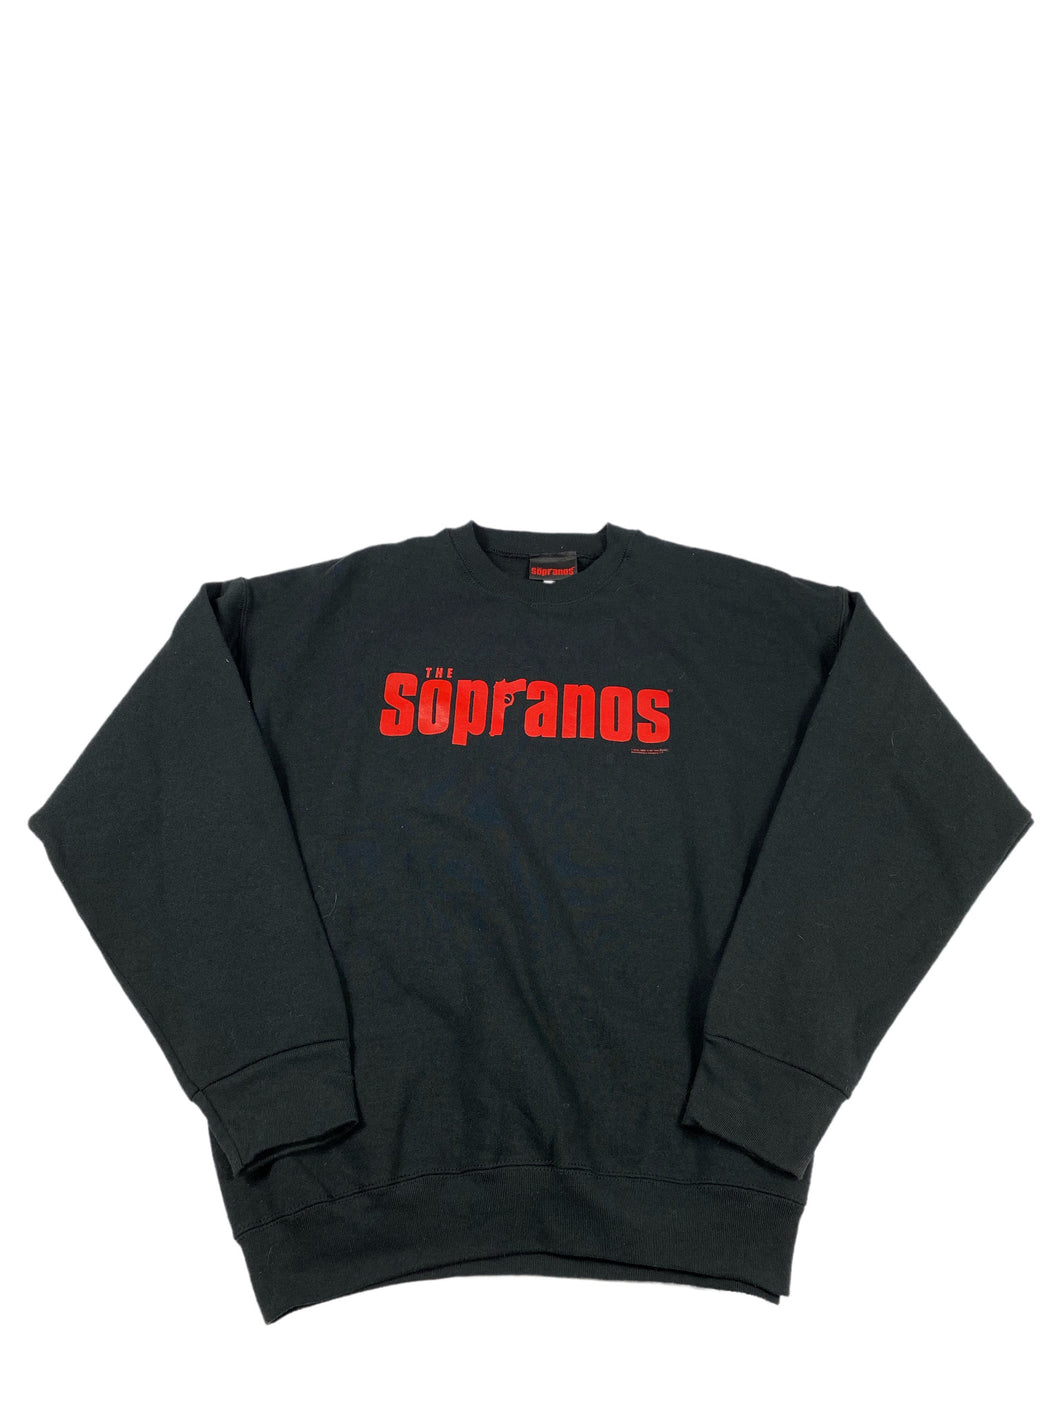 The Sopranos Crewneck